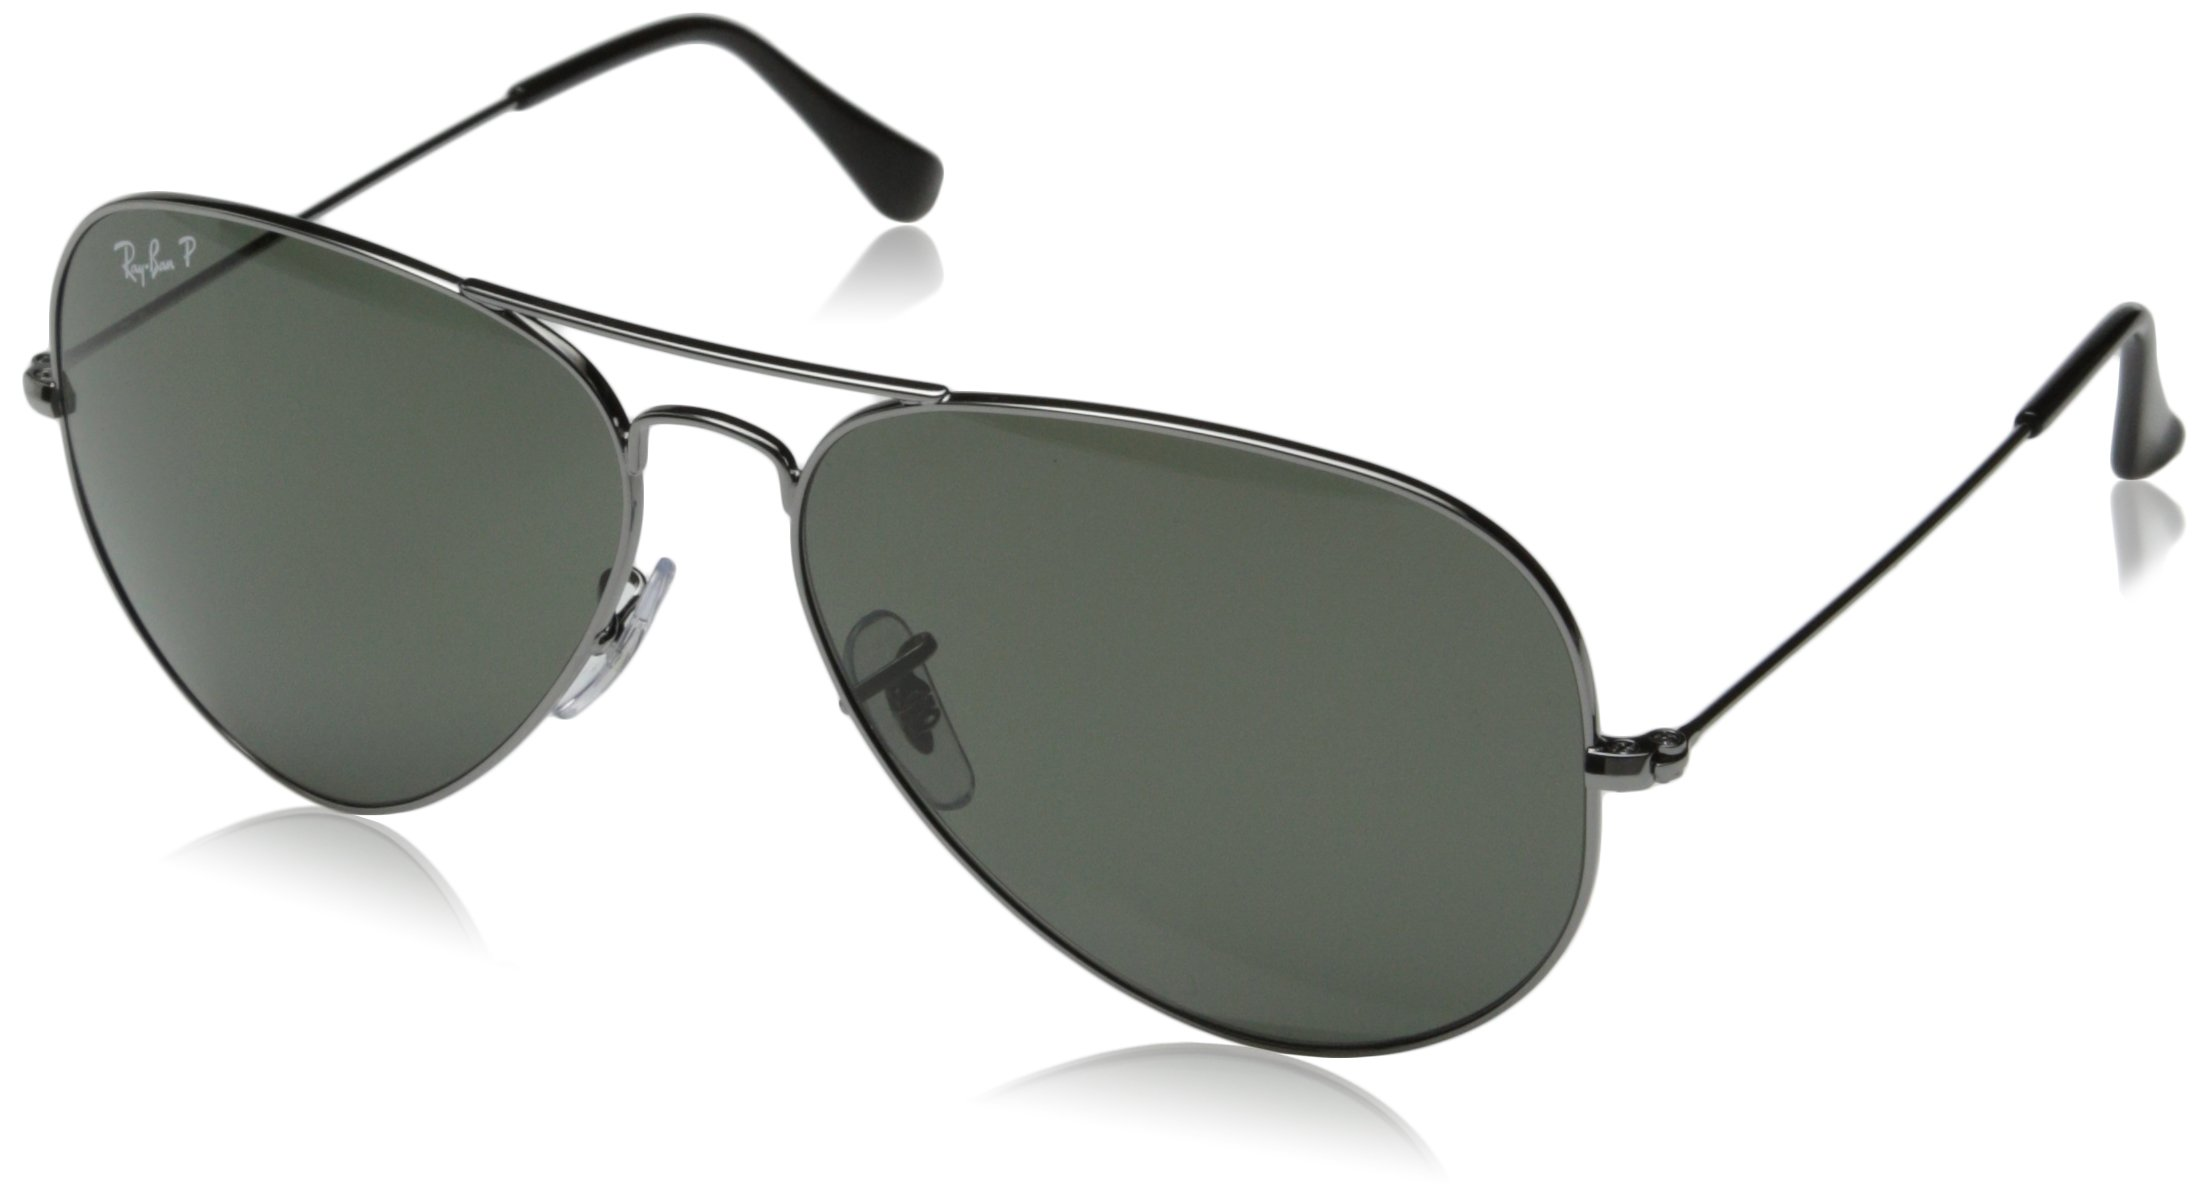 RAY-BAN RB3025 Aviator Large Metal Polarized Sunglasses, Gunmetal/Polarized Green, 62 mm by RAY-BAN